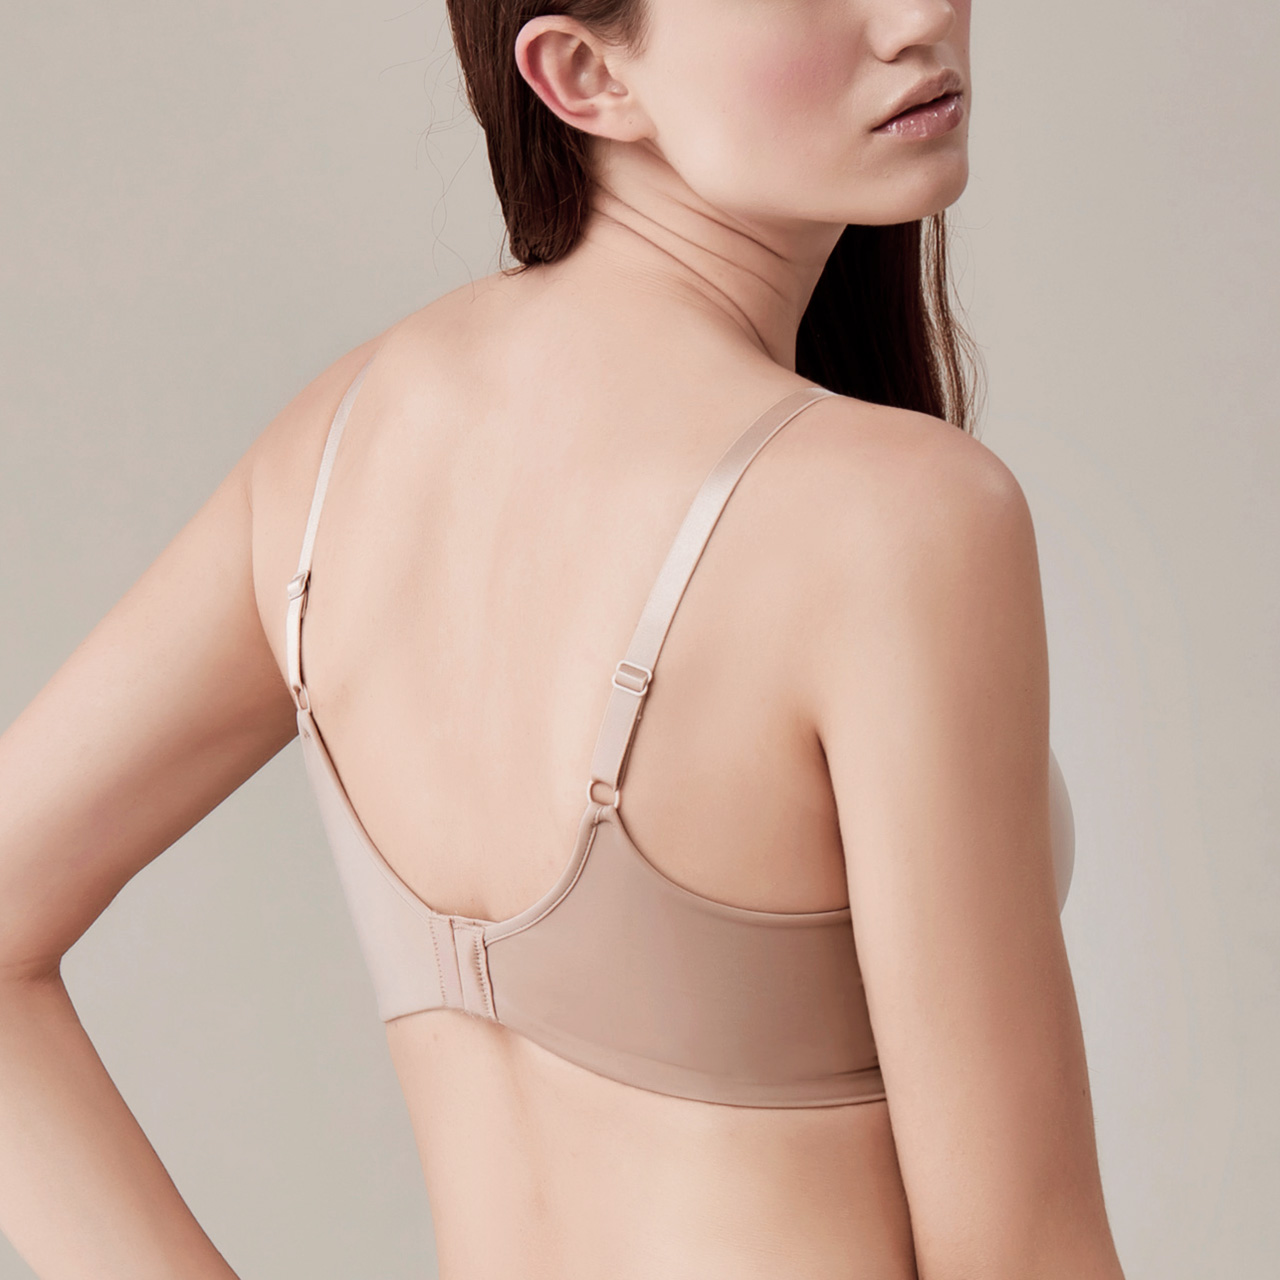 fb5d4053c6299 ... bra small chest gather gather milk underwear. Zoom · lightbox moreview  · lightbox moreview · lightbox moreview ...